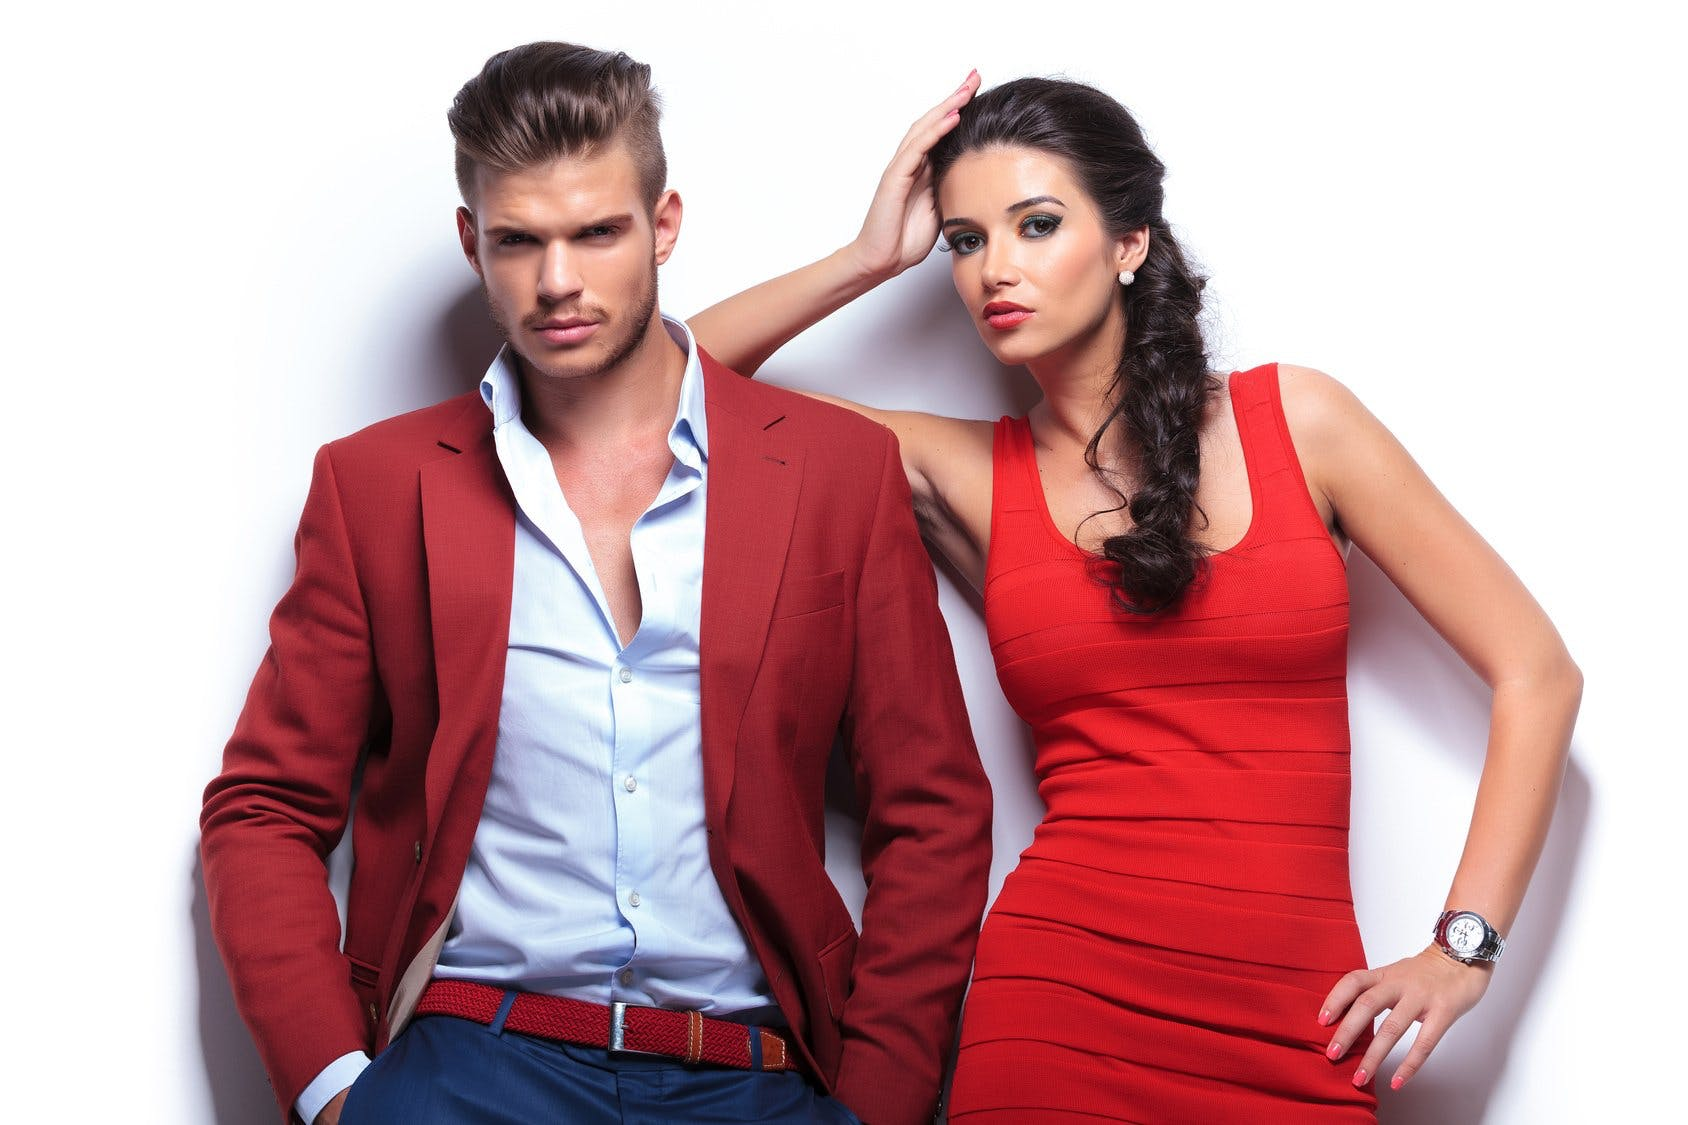 Impress Your Date – Dress for Succes